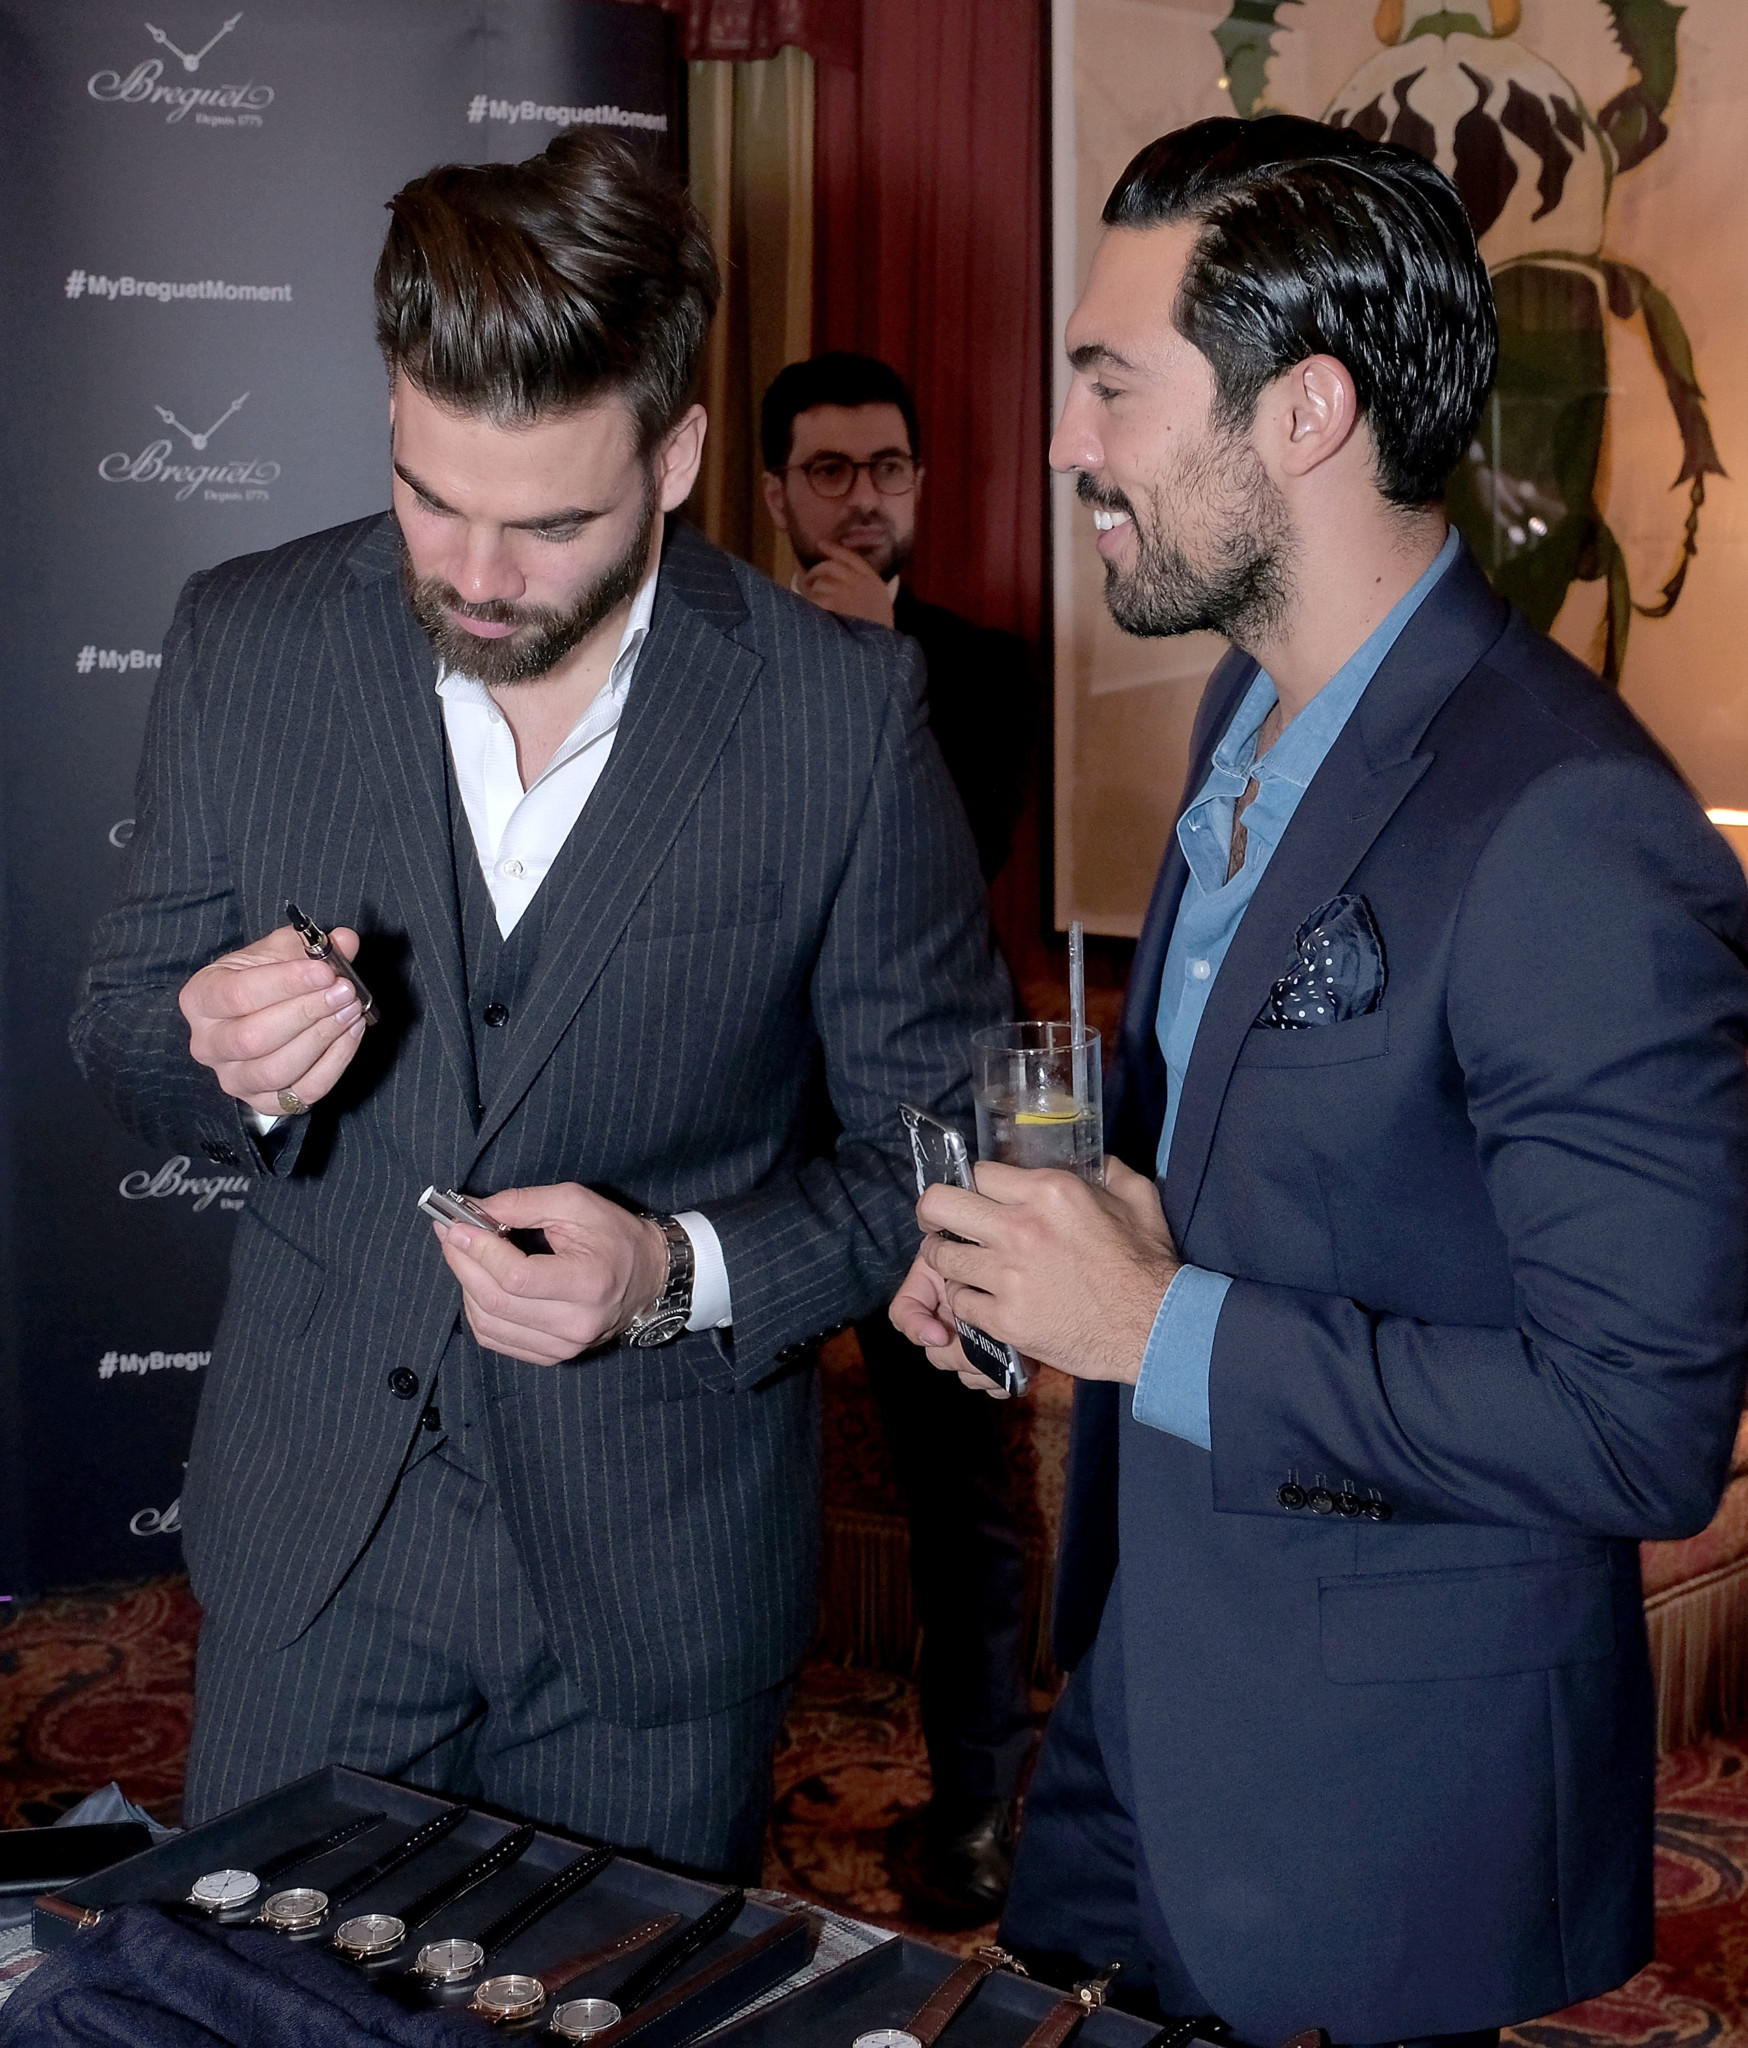 LONDON, ENGLAND - OCTOBER 04: Timothy James (L) and Henri-Nicolas de Preux attend the Breguet Classic Tour #MyBreguetMoment in association with The Gentleman's Journal at Mark's Club on October 4, 2017 in London, England. (Photo by David M. Benett/Dave Benett/Getty Images for Breguet) *** Local Caption *** Timothy James; Henri-Nicolas de Preux